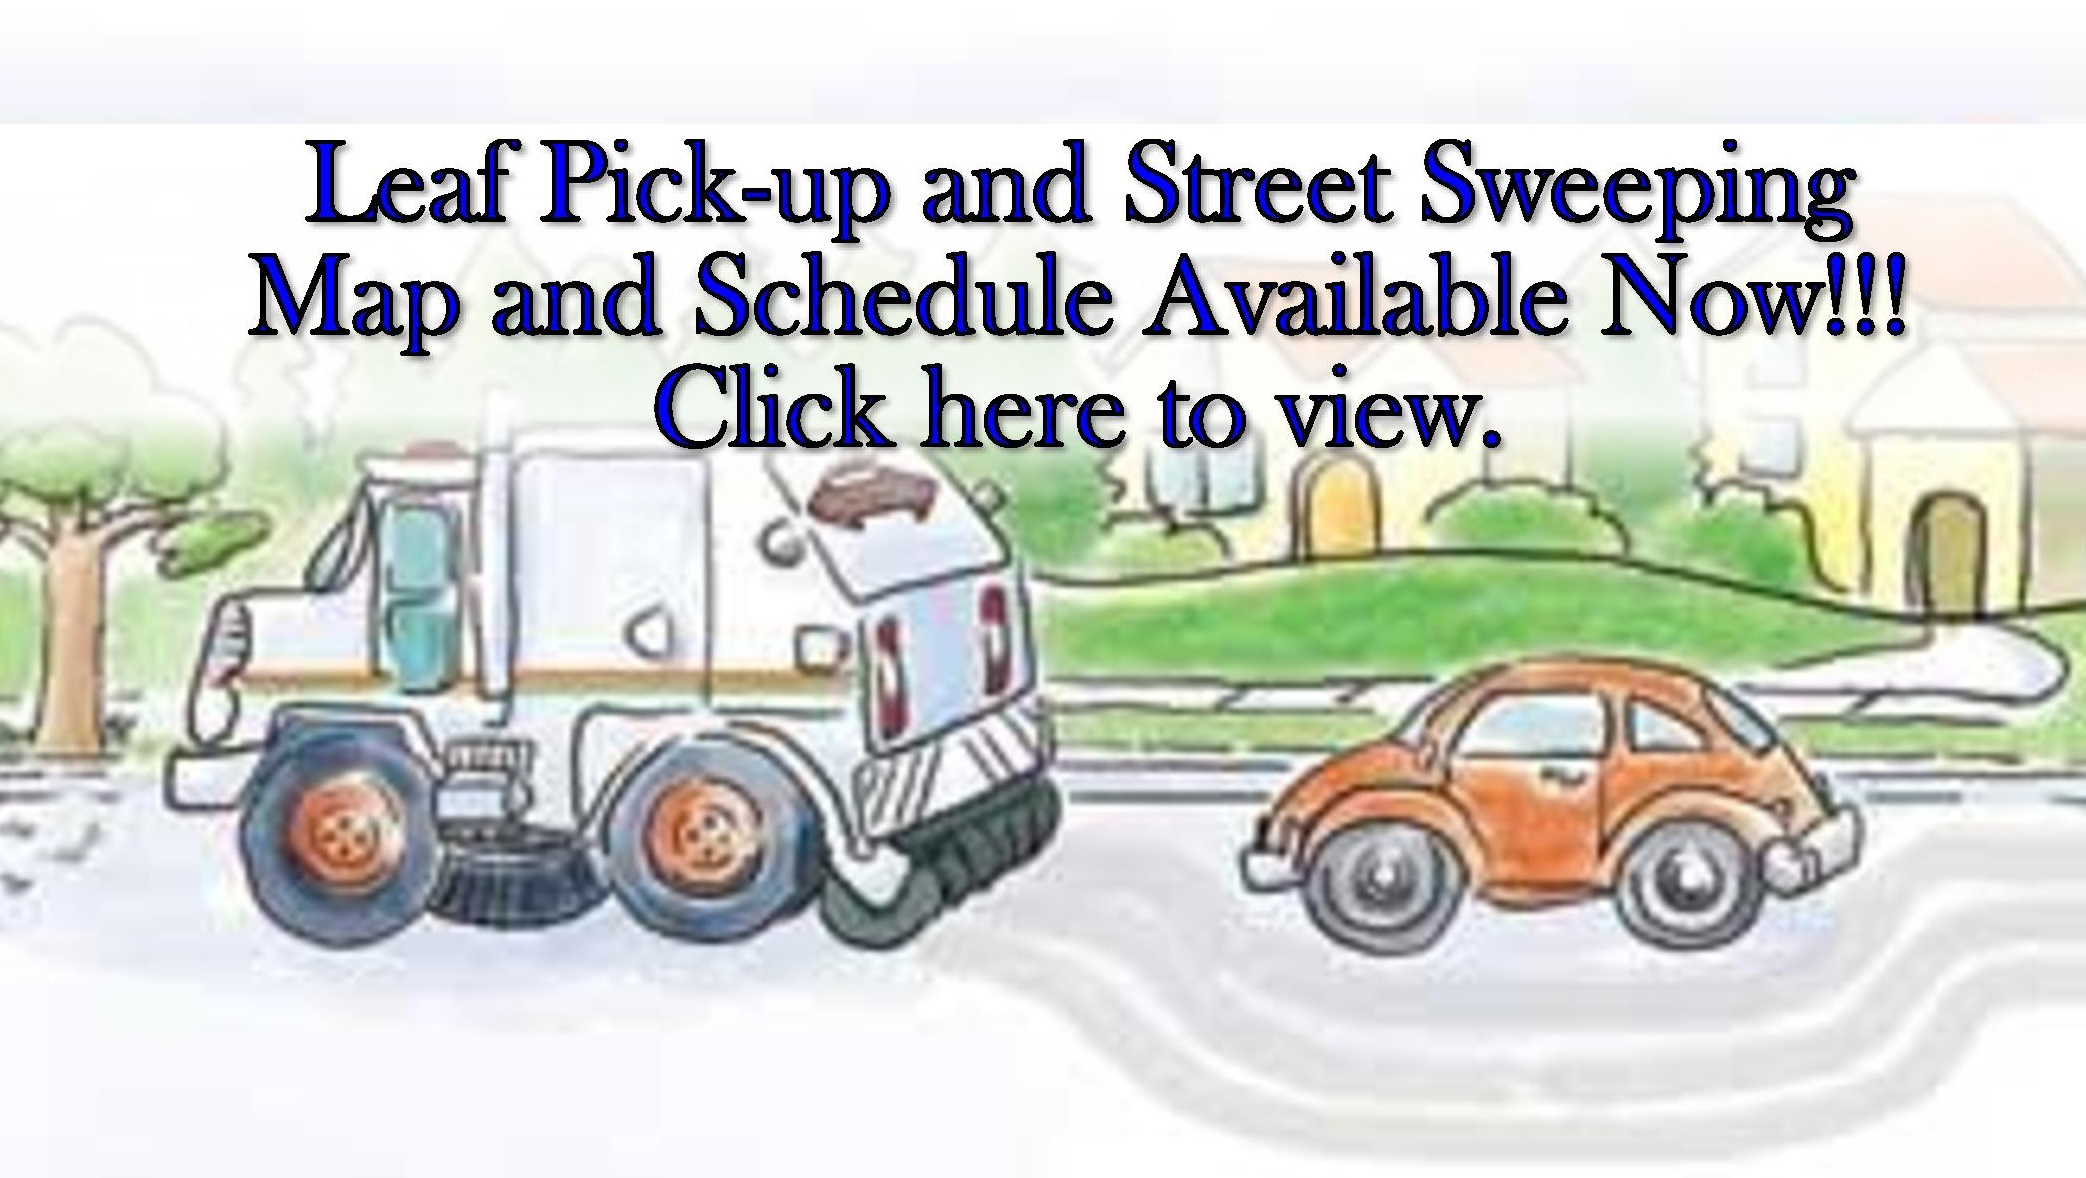 Street Sweeping view now-page-001.jpg